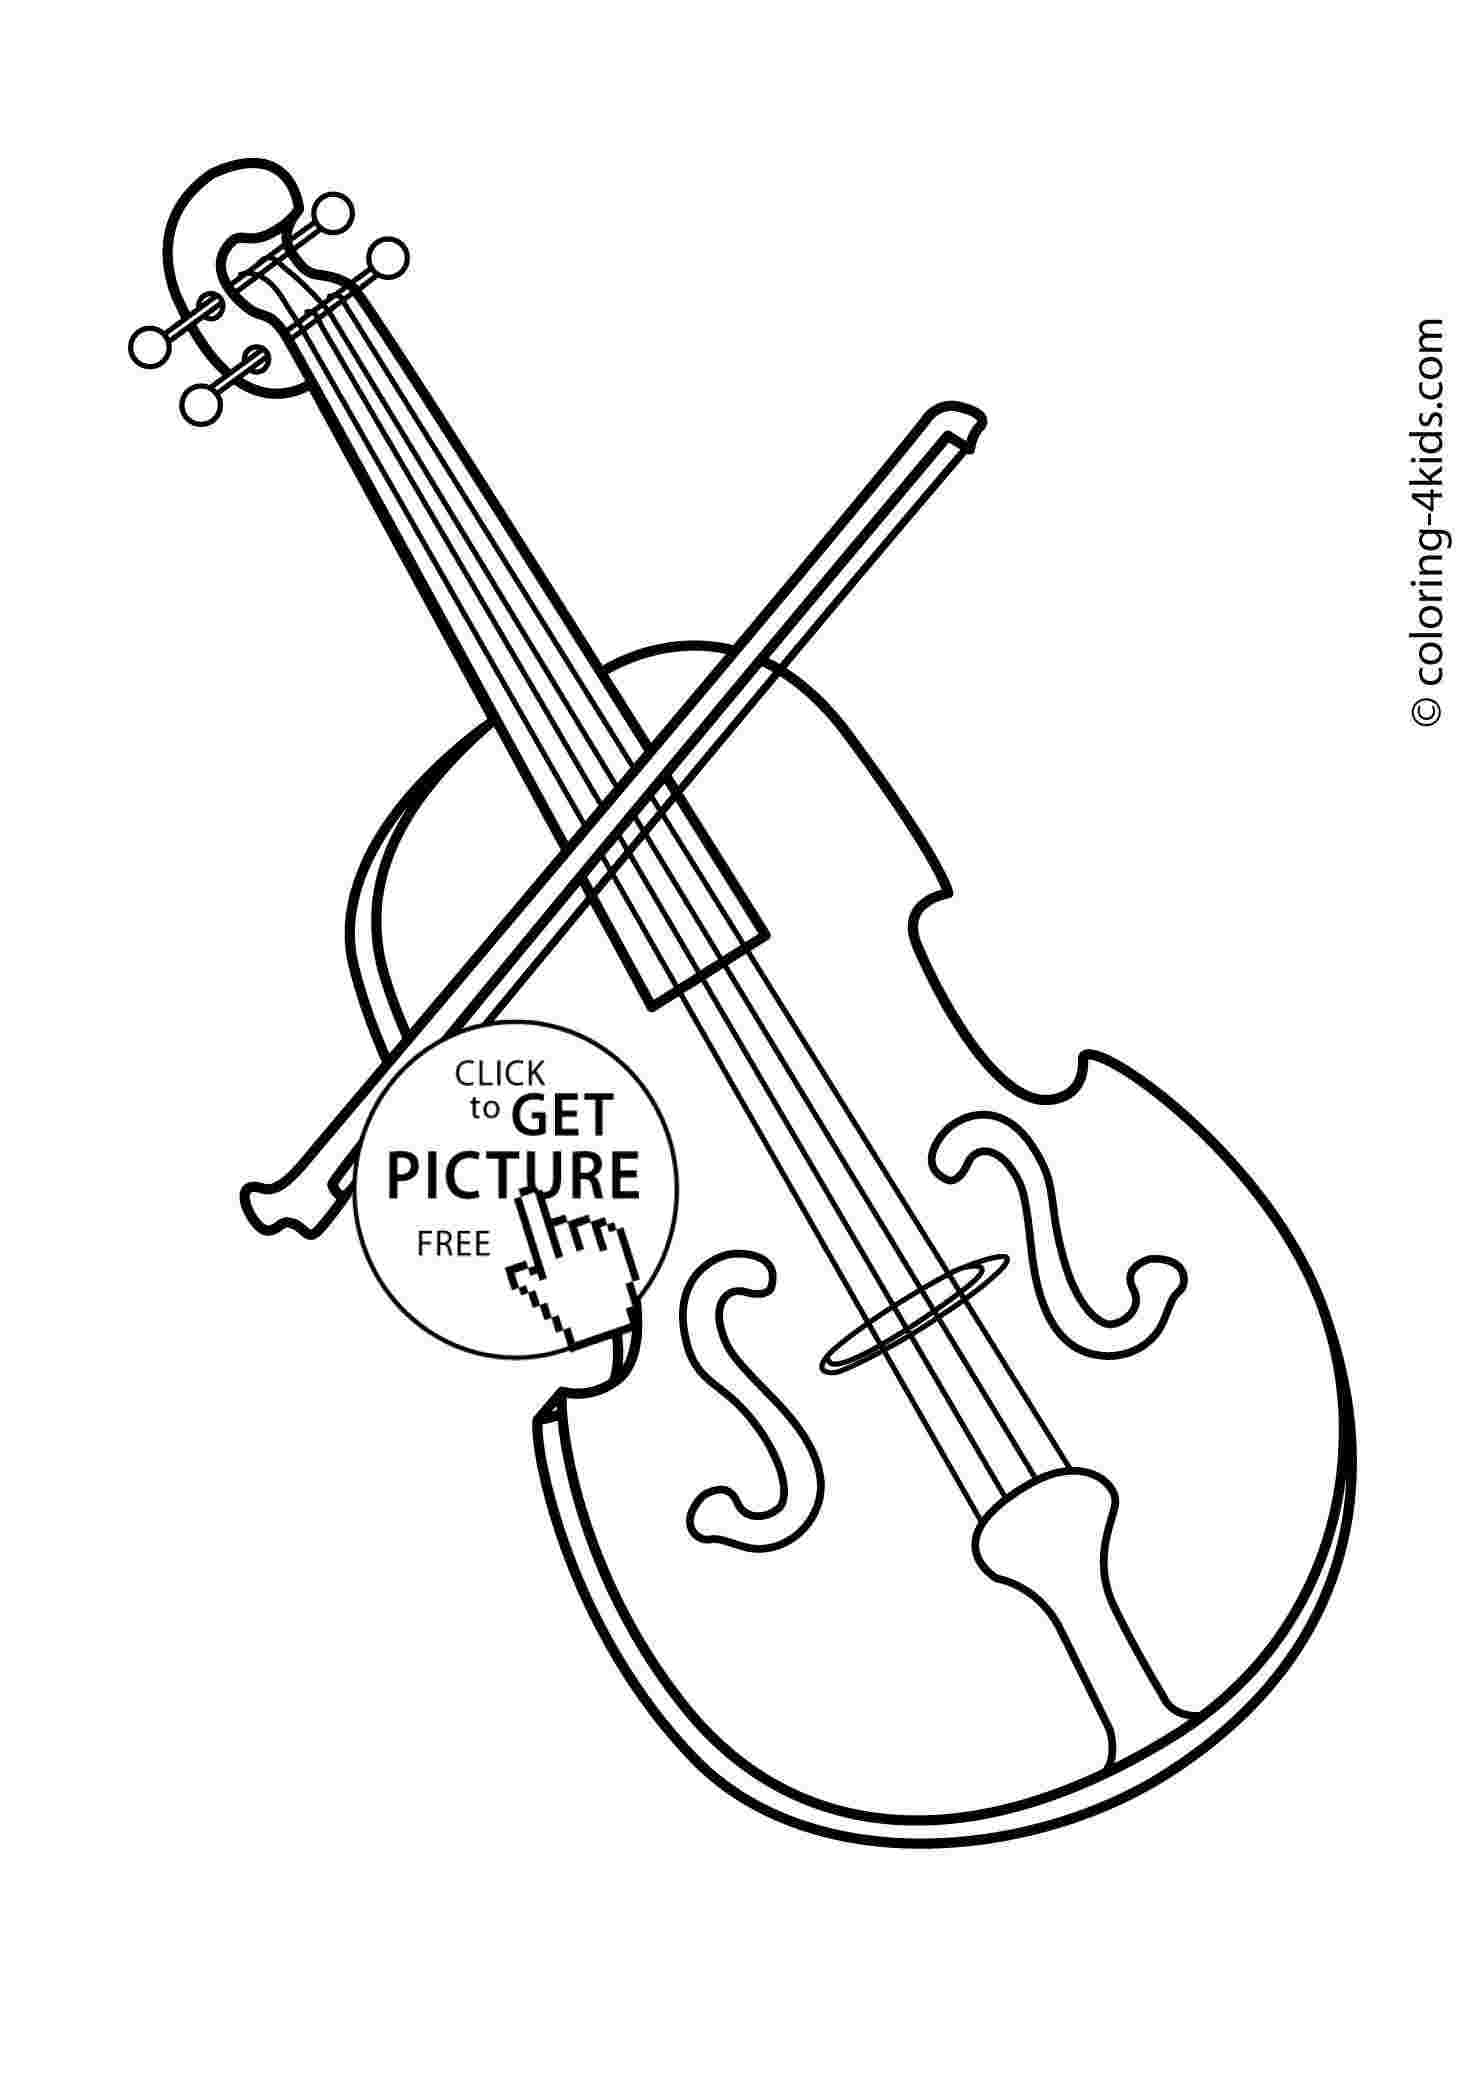 Free Cliparts: Sheet Music Instruments Cello Clipart Free.